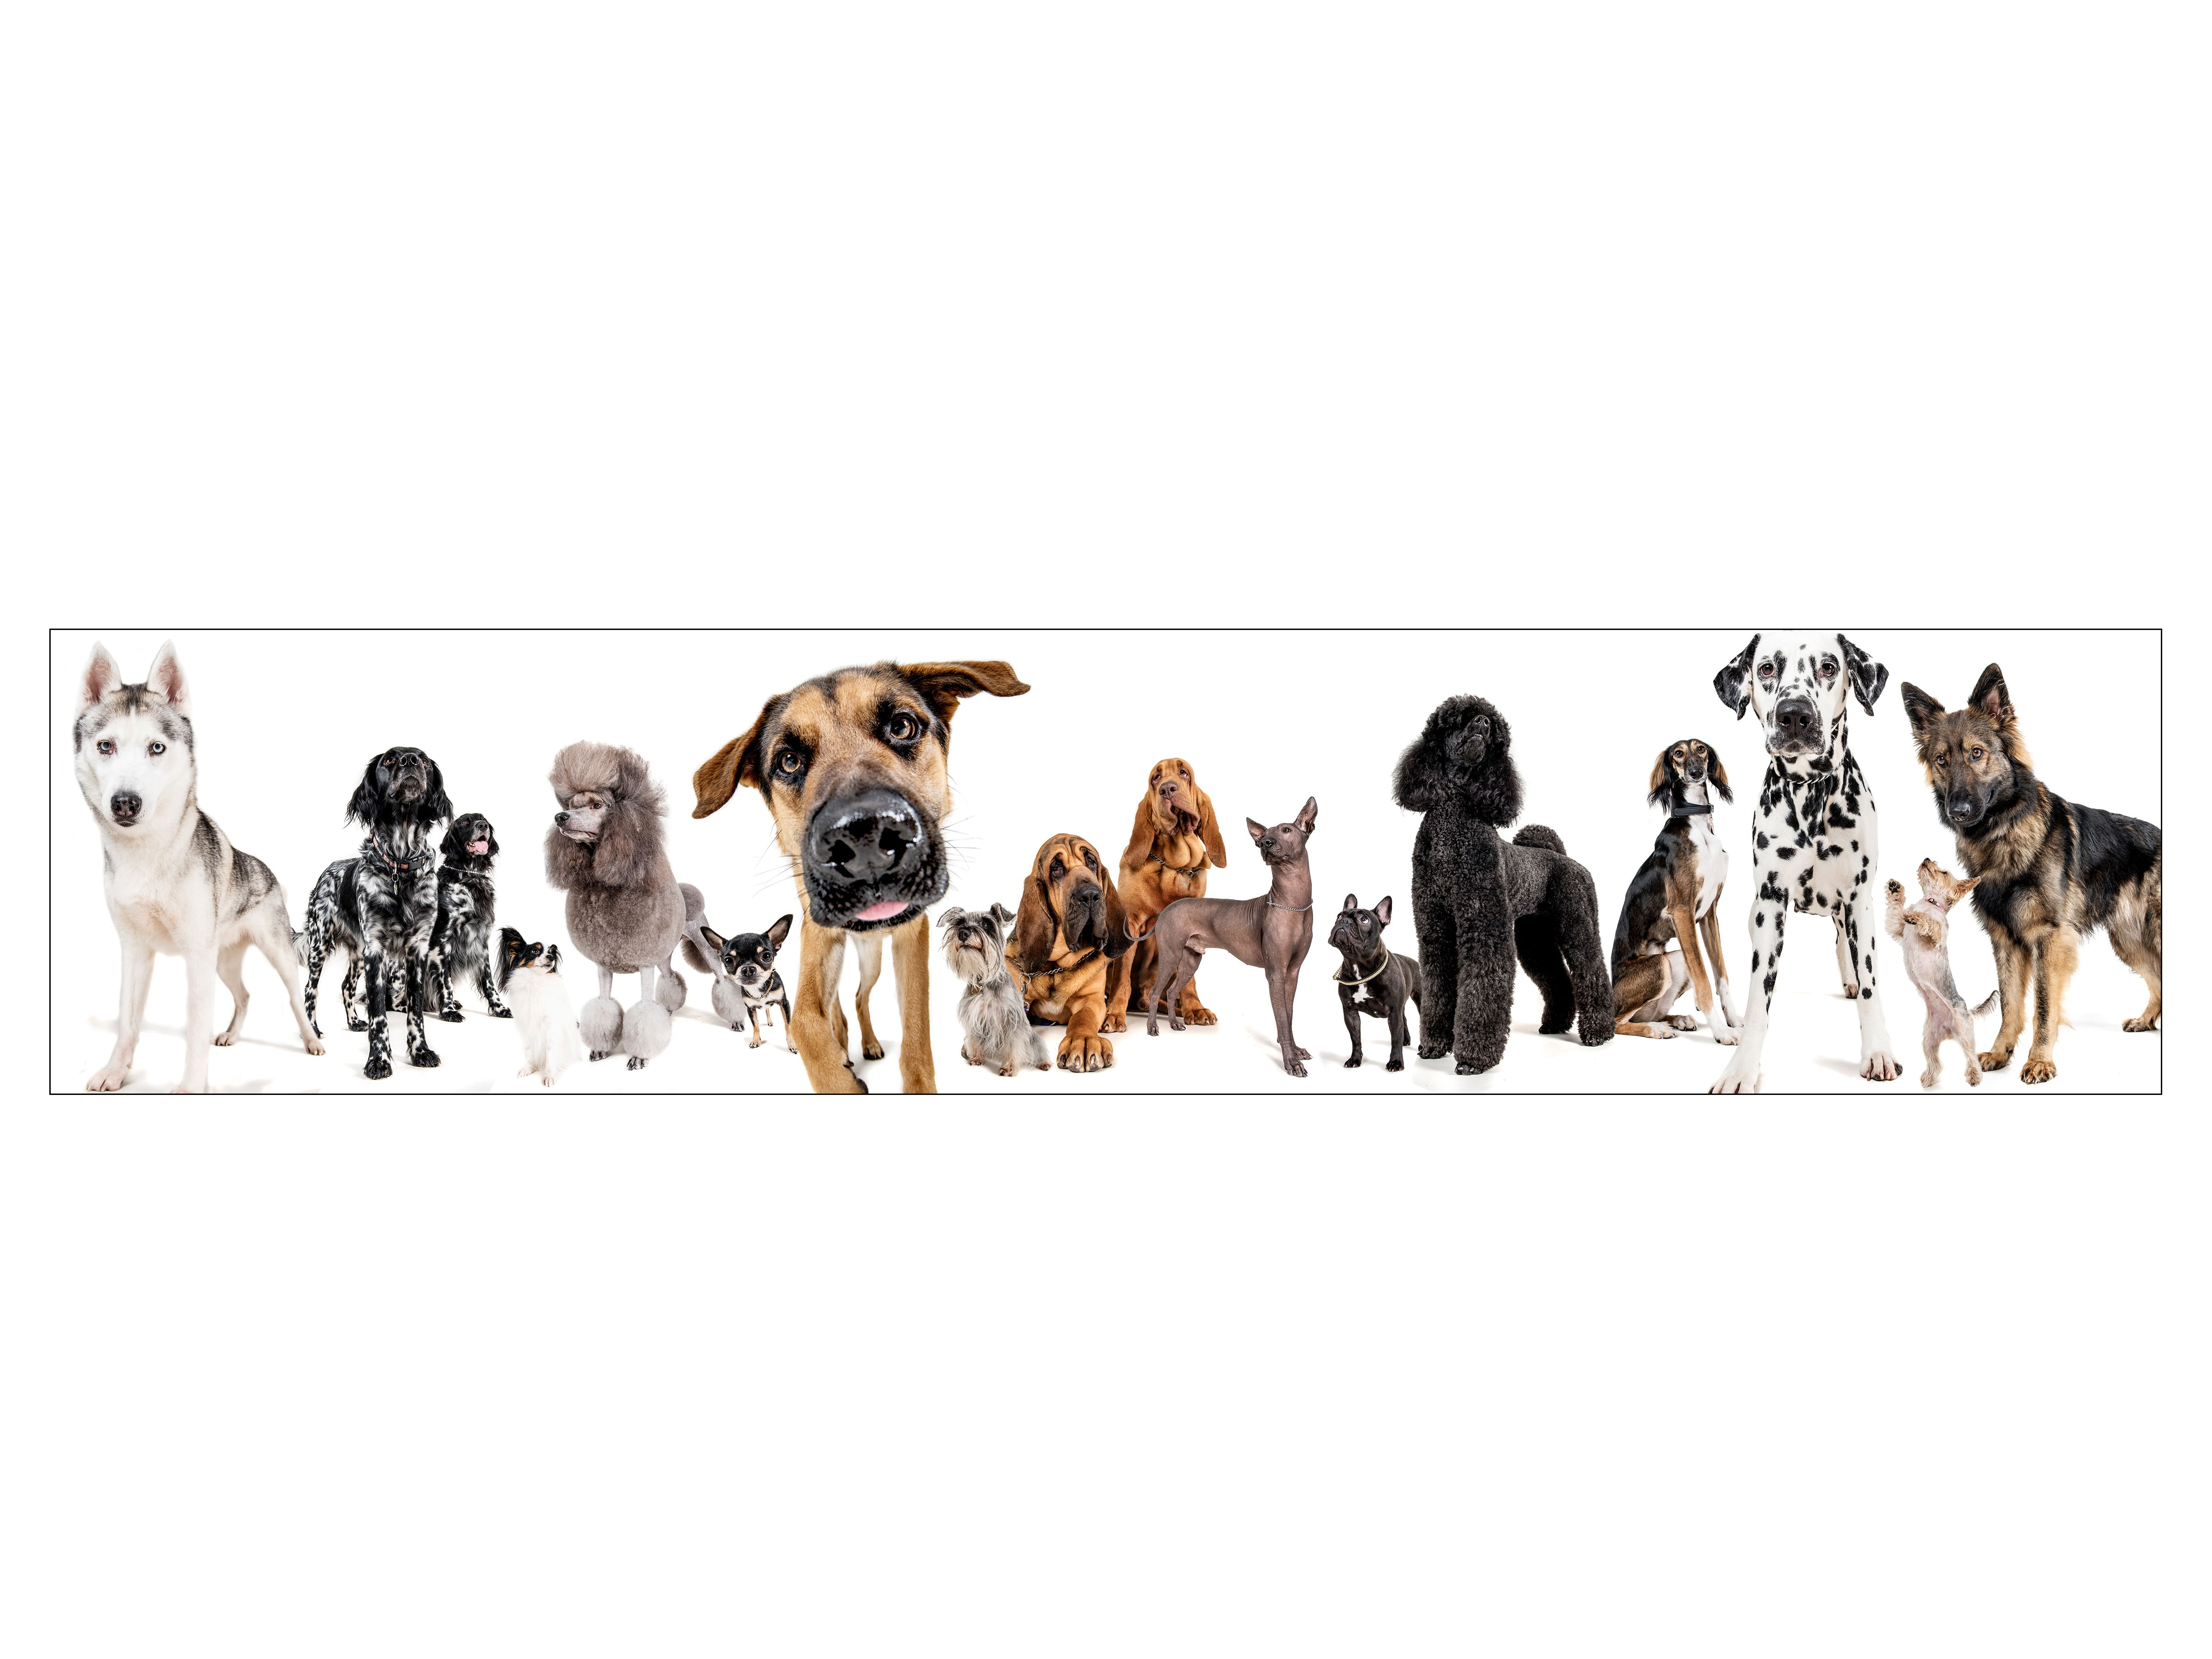 Pet Photography Hertfordshire All Breeds Of Dogs Collection Of